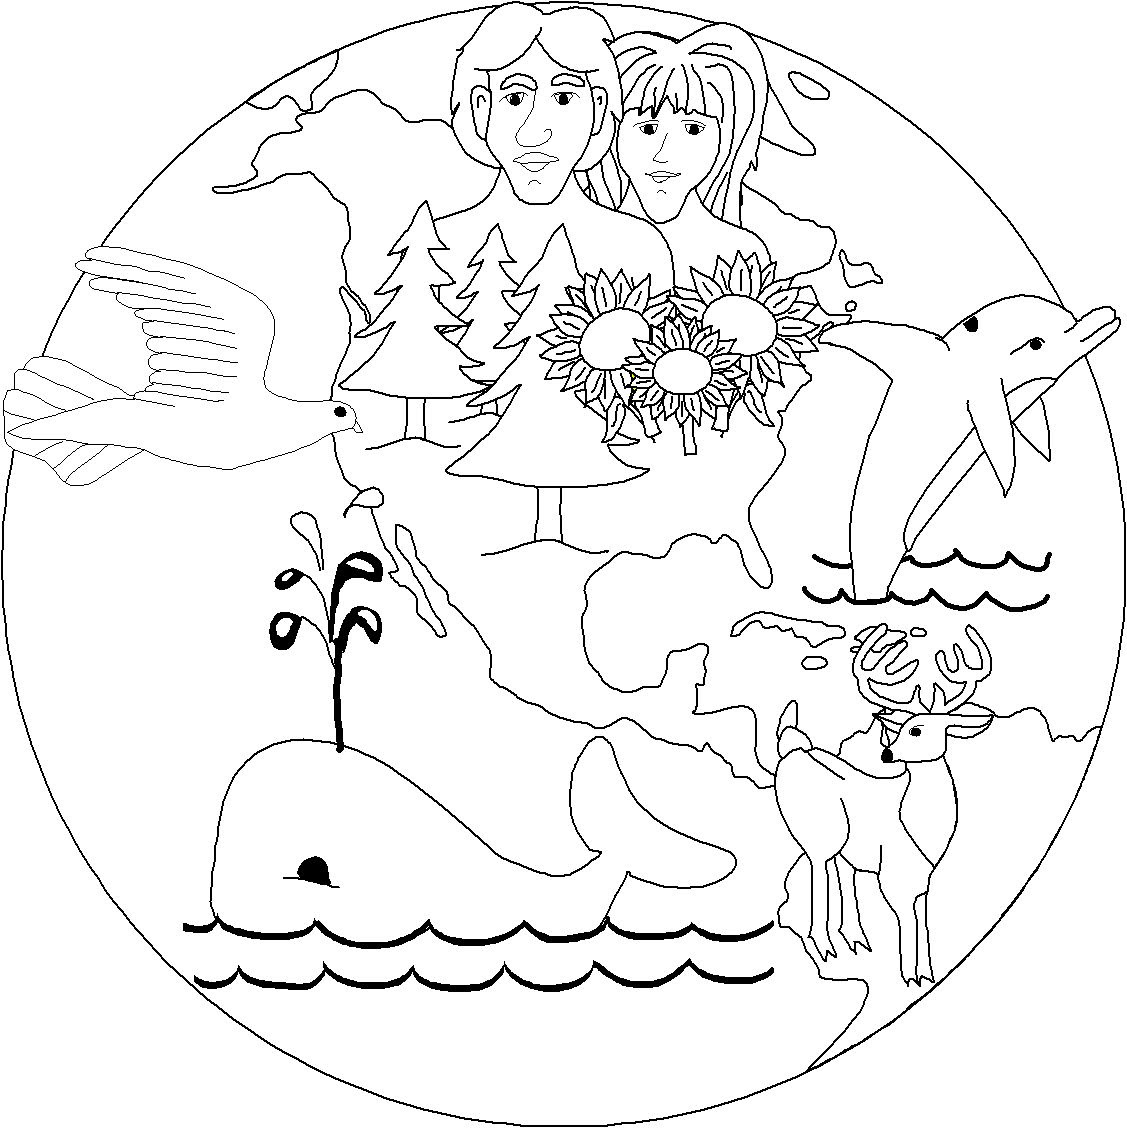 7400 Top Christian Coloring Pages Creation Images & Pictures In HD